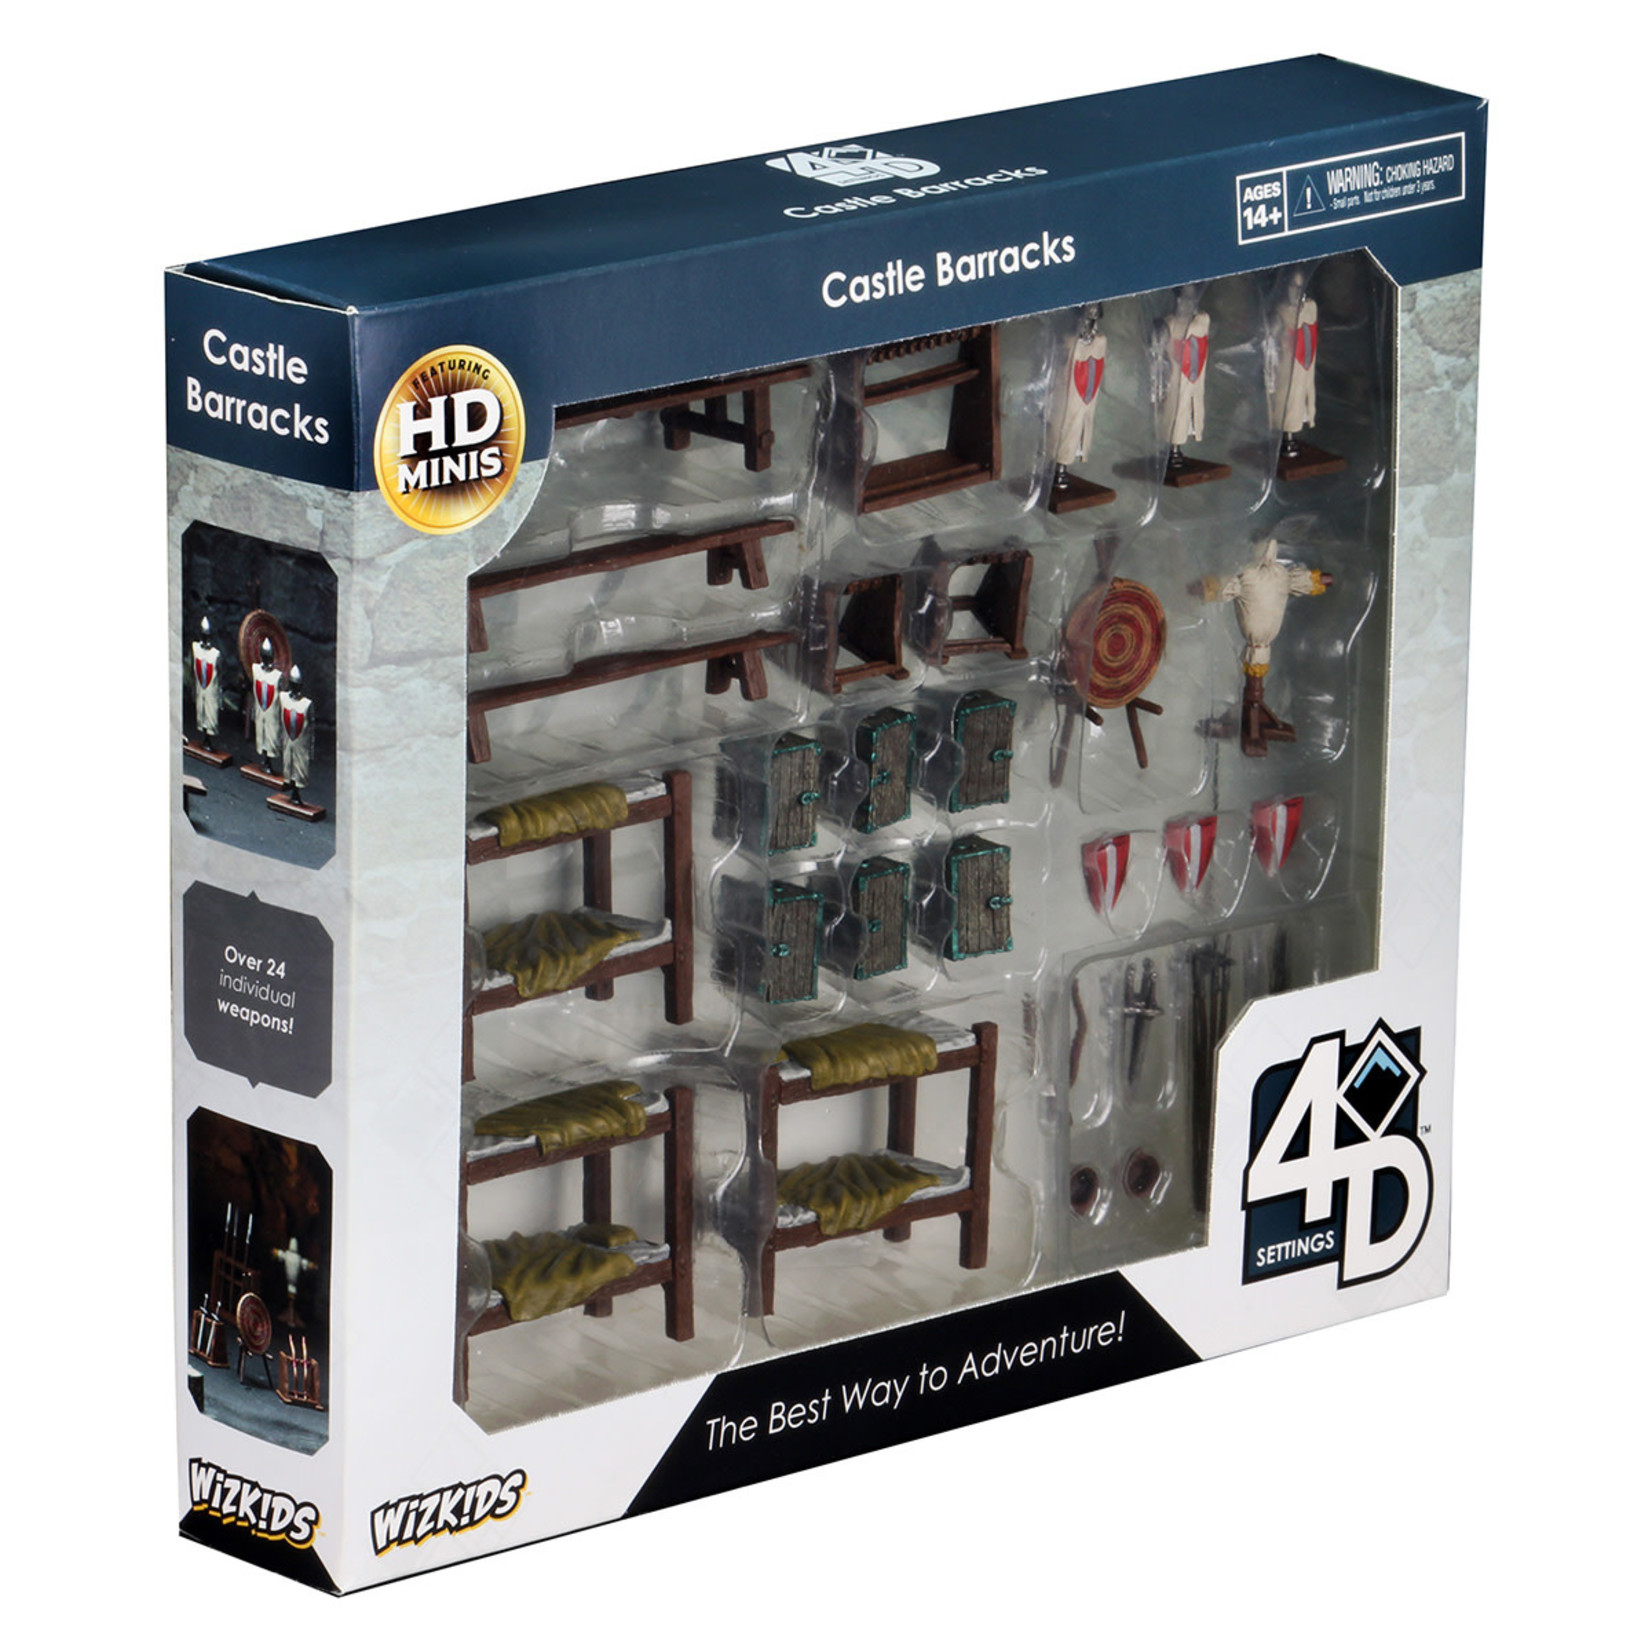 WizKids WizKids 4D Settings: Castle Barracks